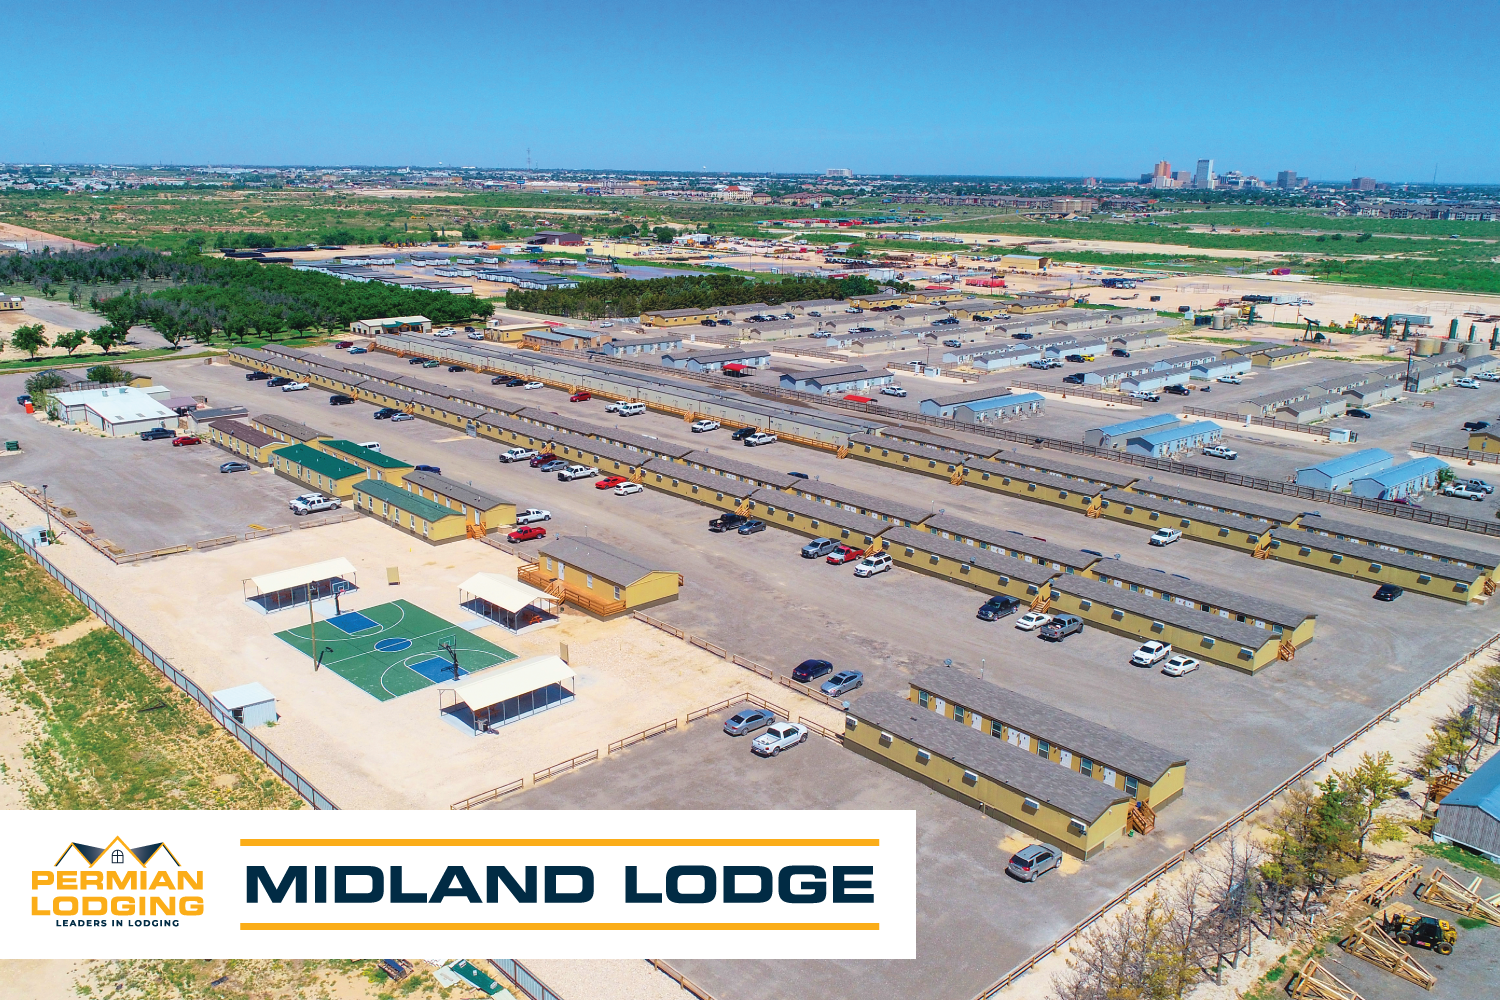 Midland Lodge